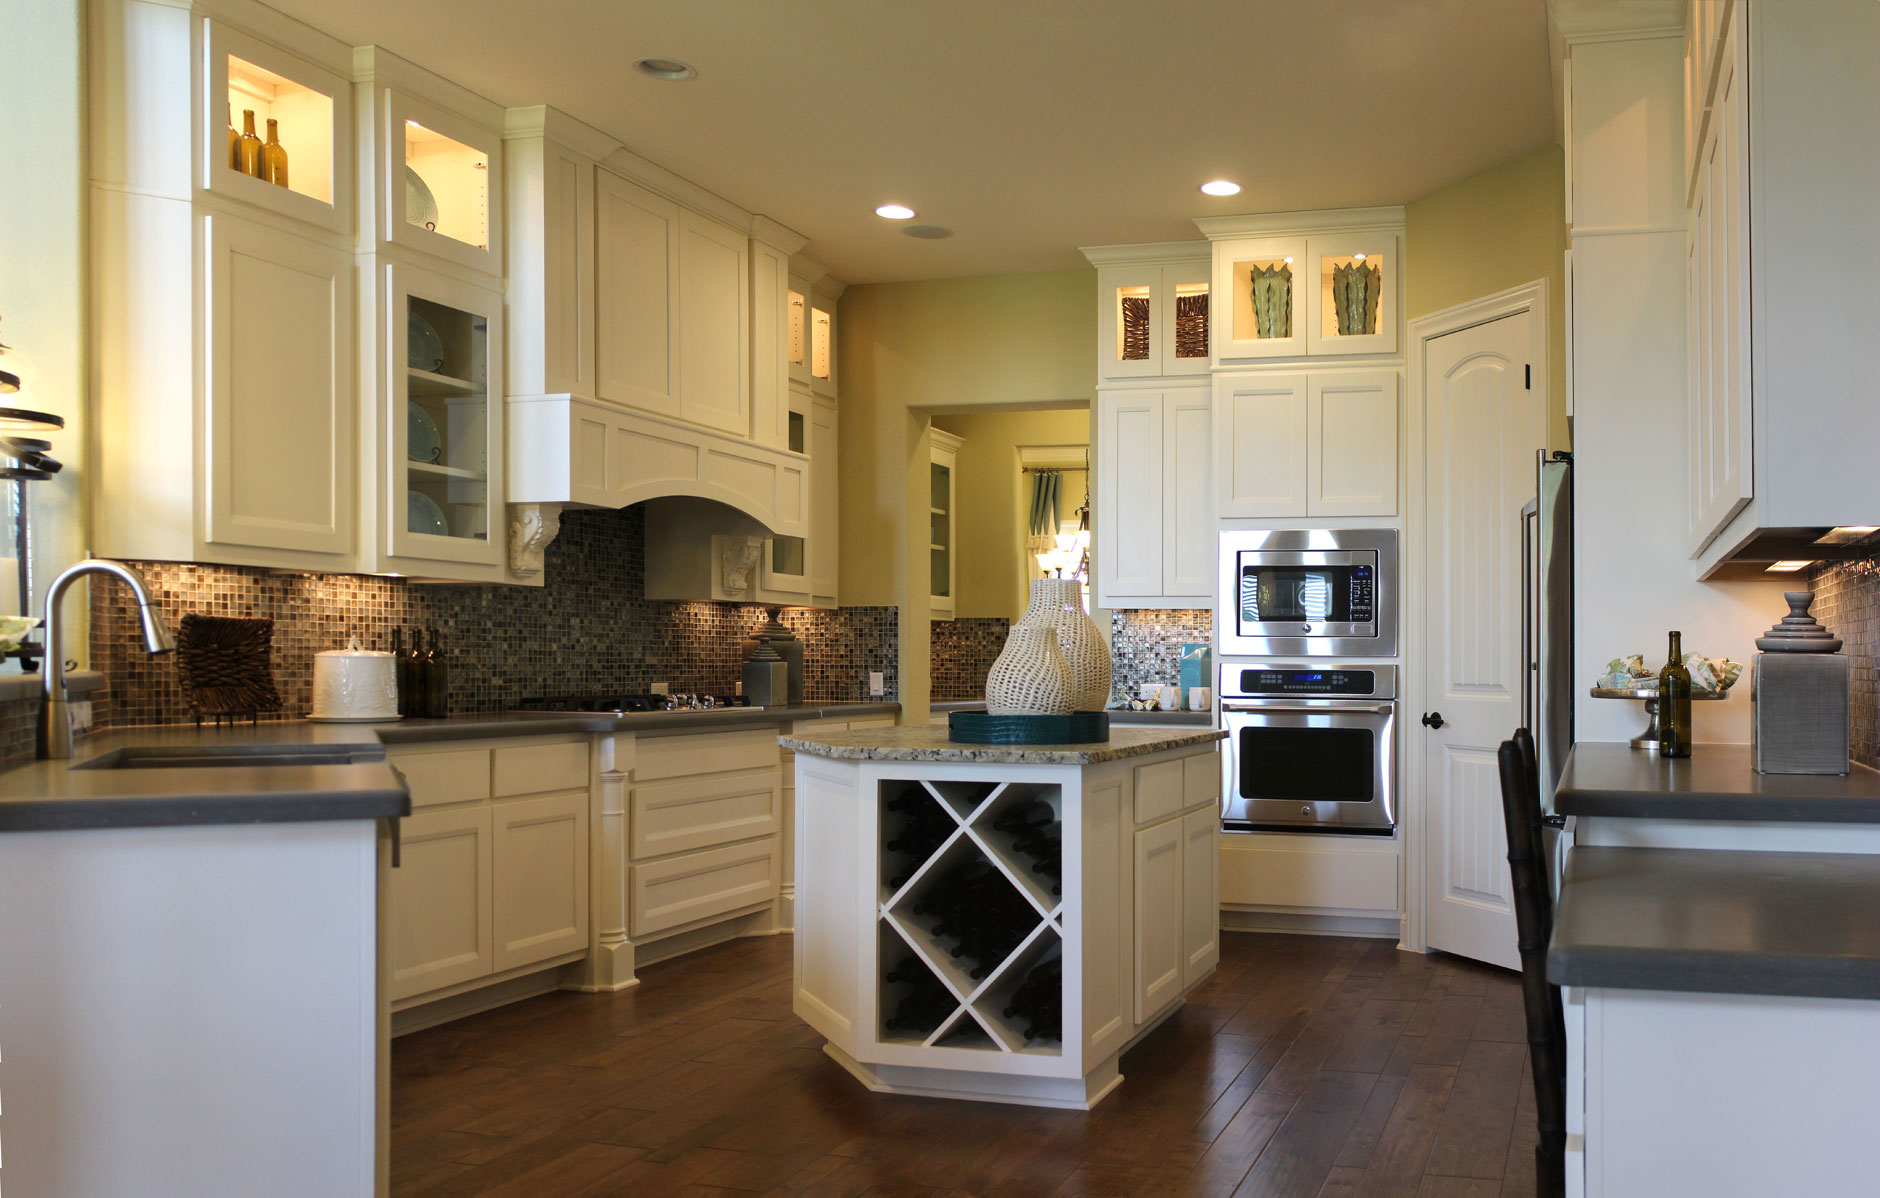 which cabinet designs are timeless? - taylorcraft cabinet door company